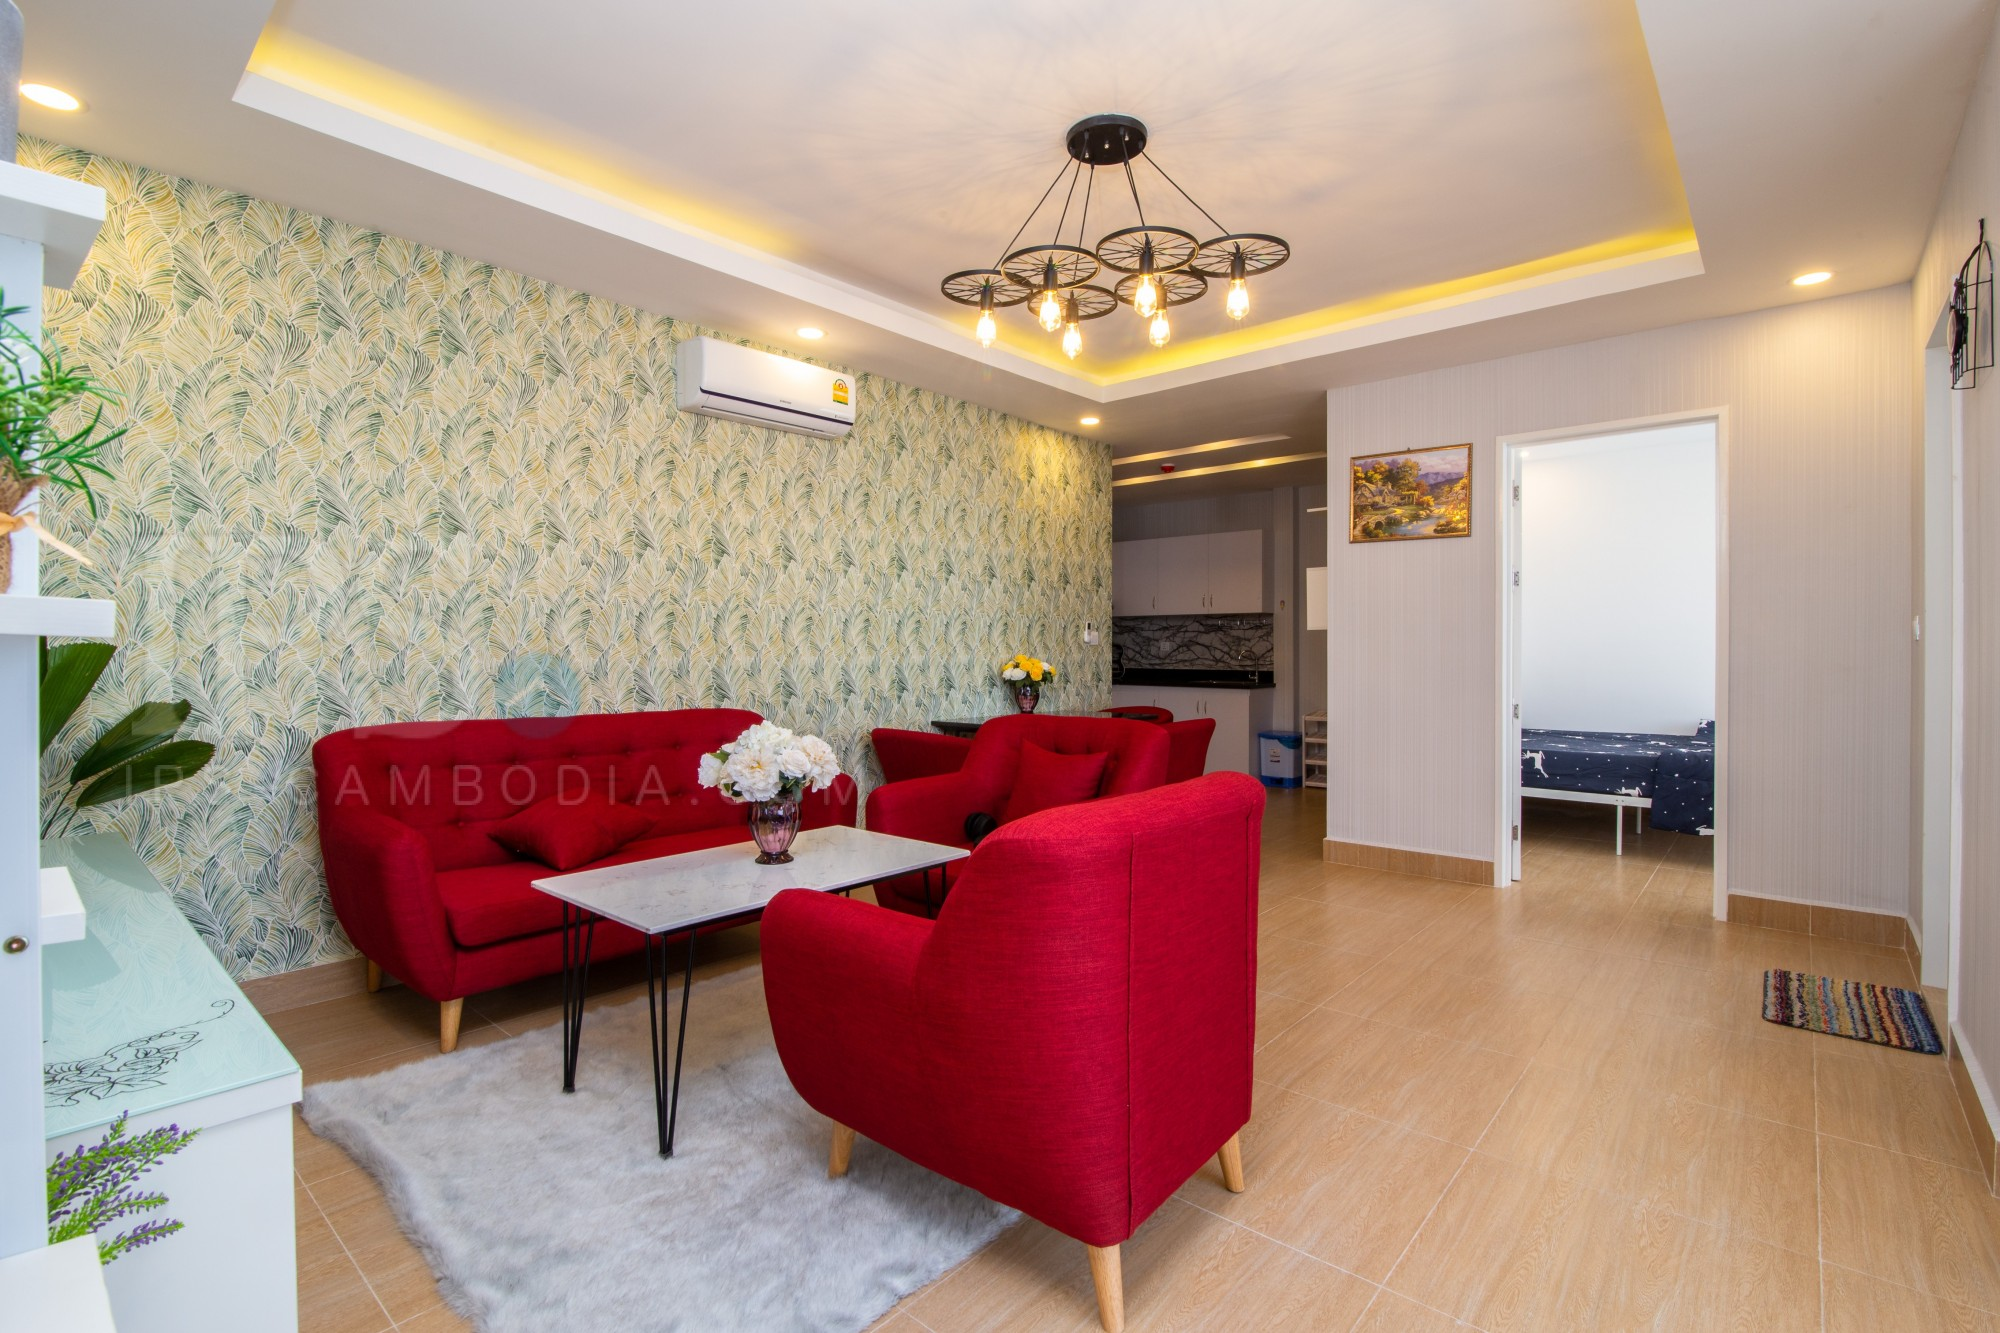 2 Bedroom Apartment  For Sale - Boeung Keng Kang 3, Phnom Penh